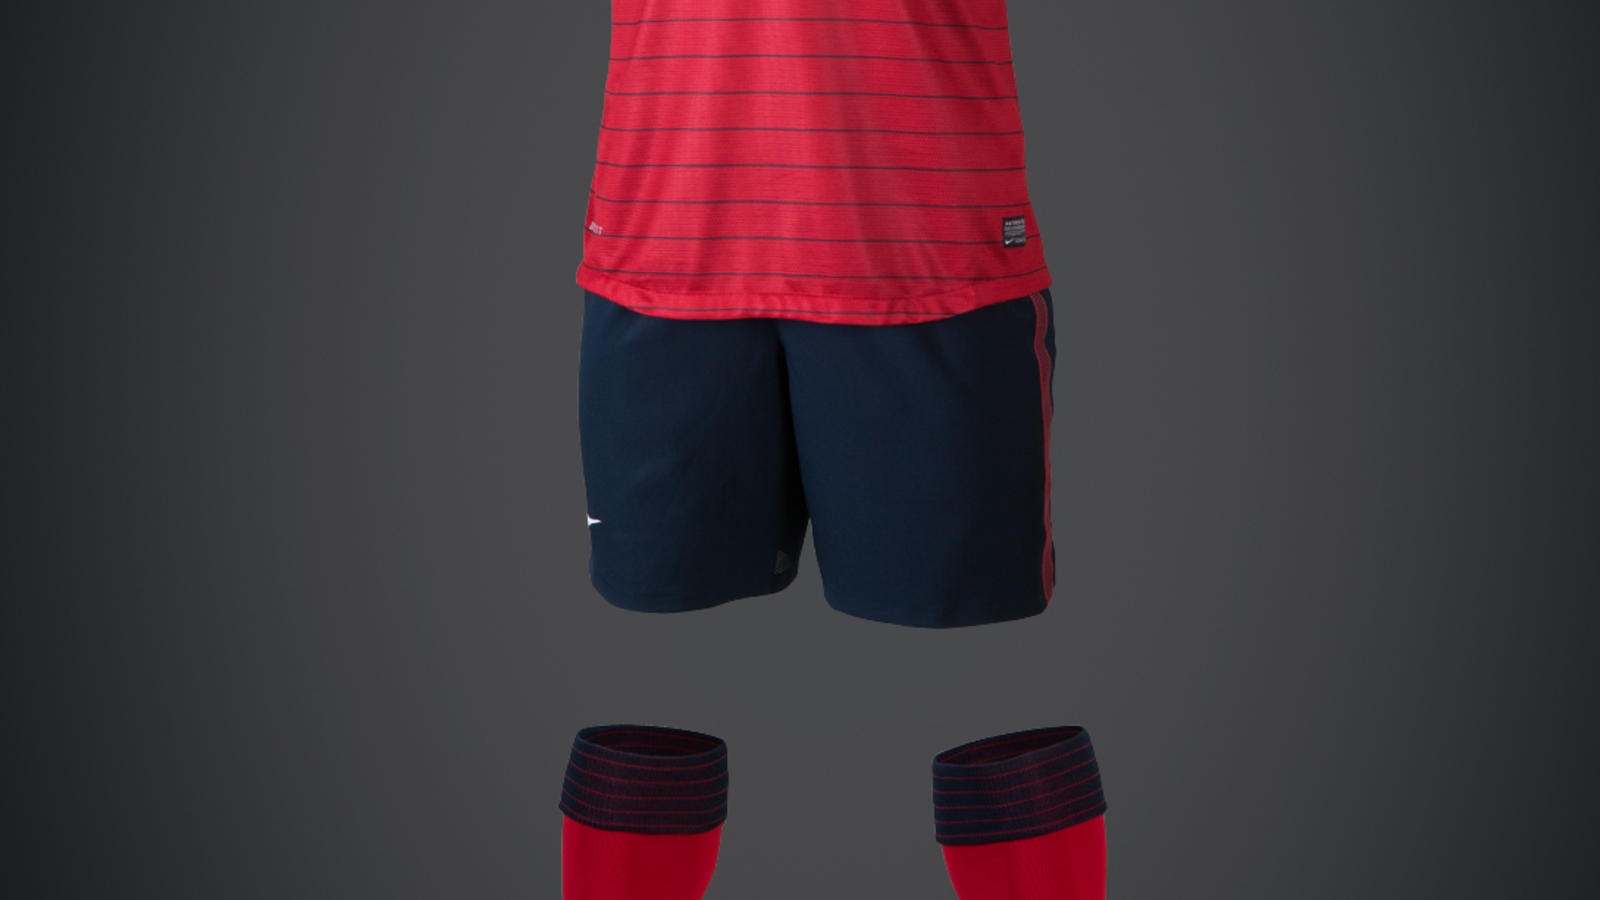 Japan Club Teams Head To The Pitch In 2013 In New Nike